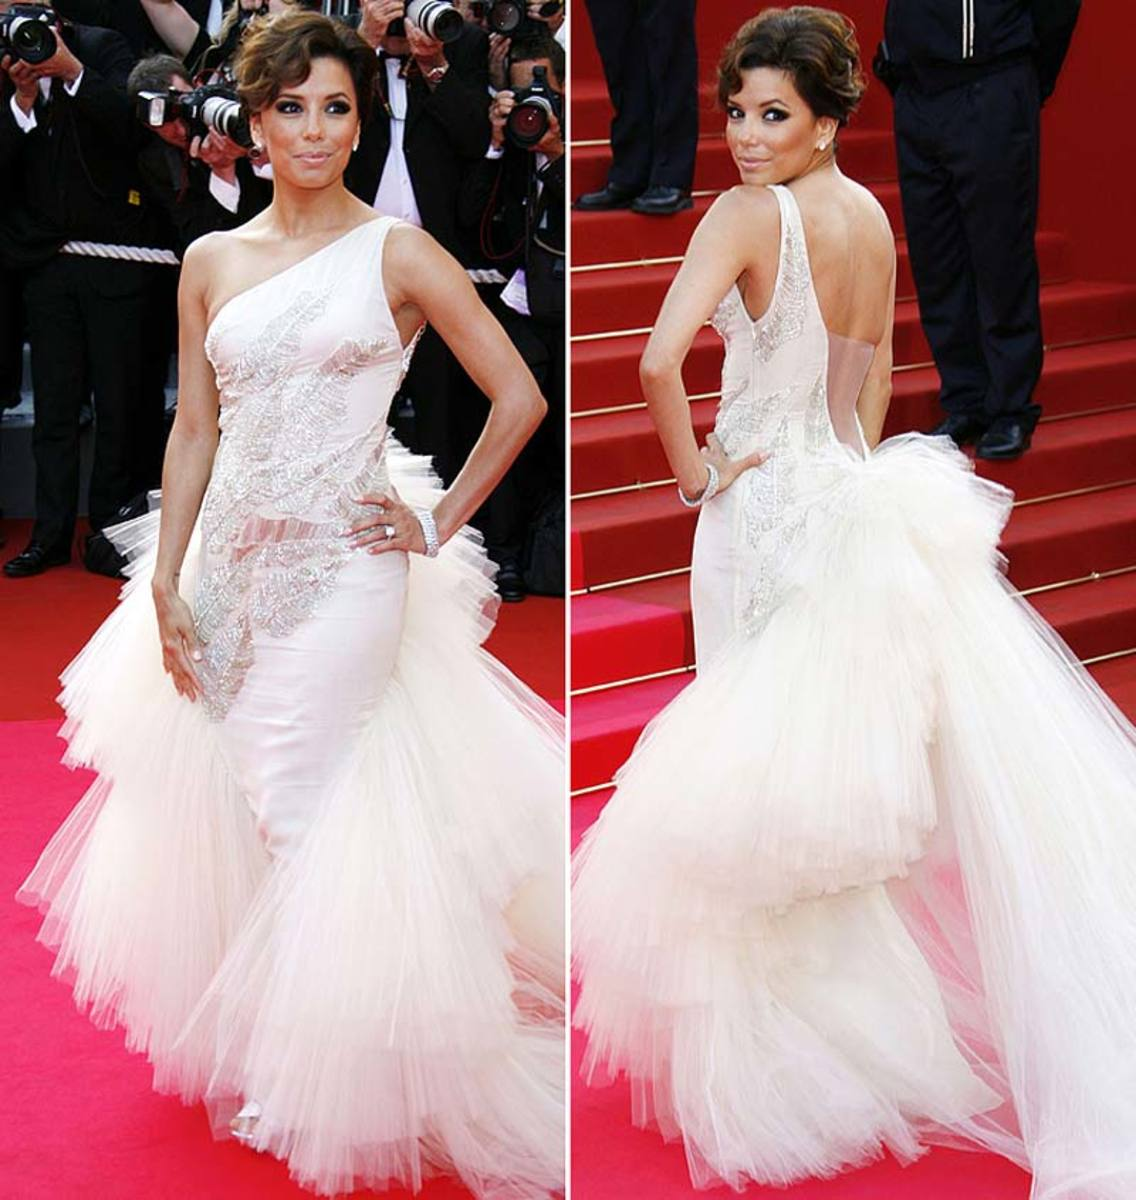 Eva Longoria in White Evening Dress with Long Train